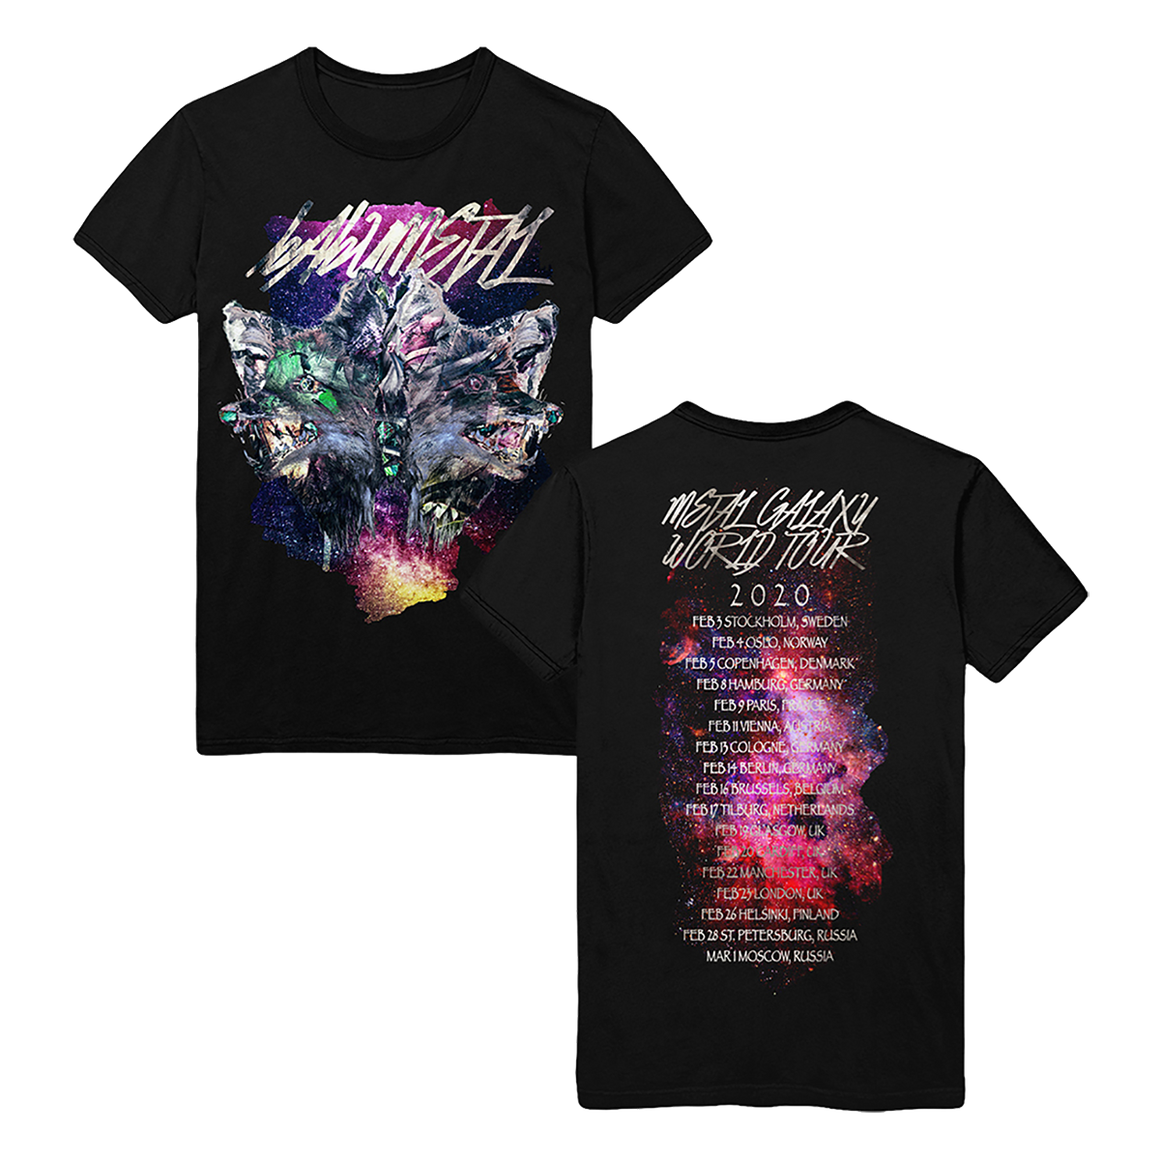 FOXES MONTAGE -MGWT EU VER.- TEE - BABYMETAL UK STORE